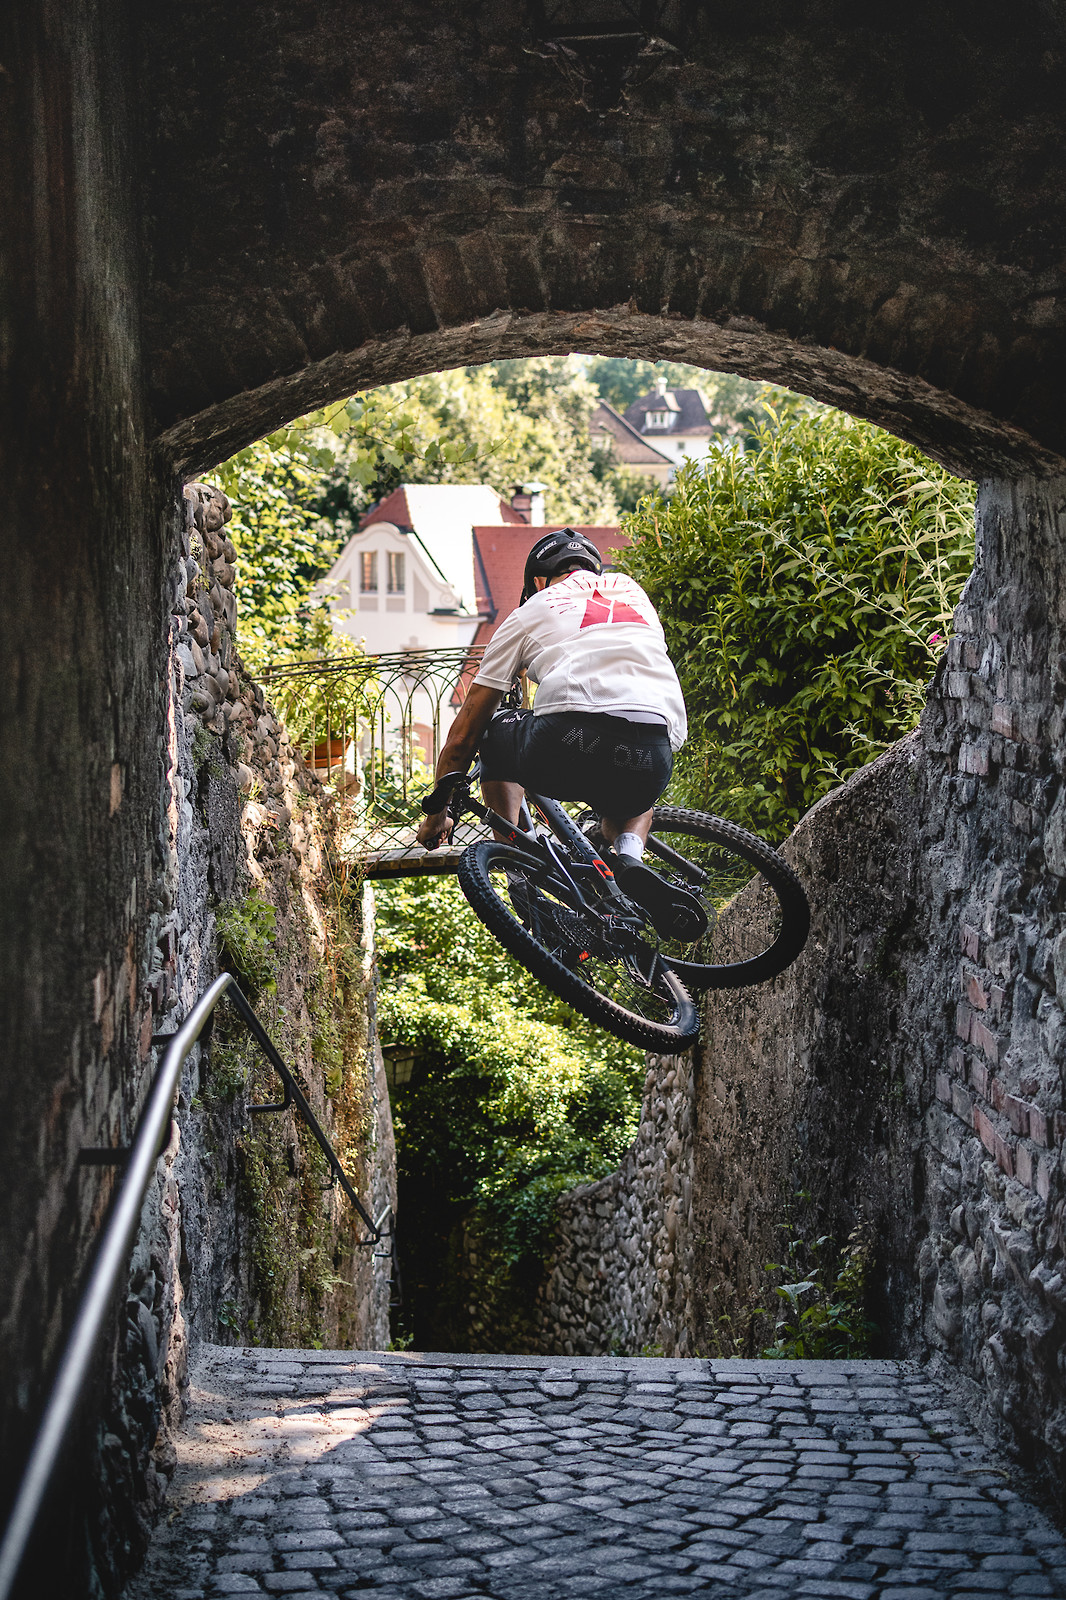 Through the tunnel  - Korbinian Engstler - Mountain Biking Pictures - Vital MTB